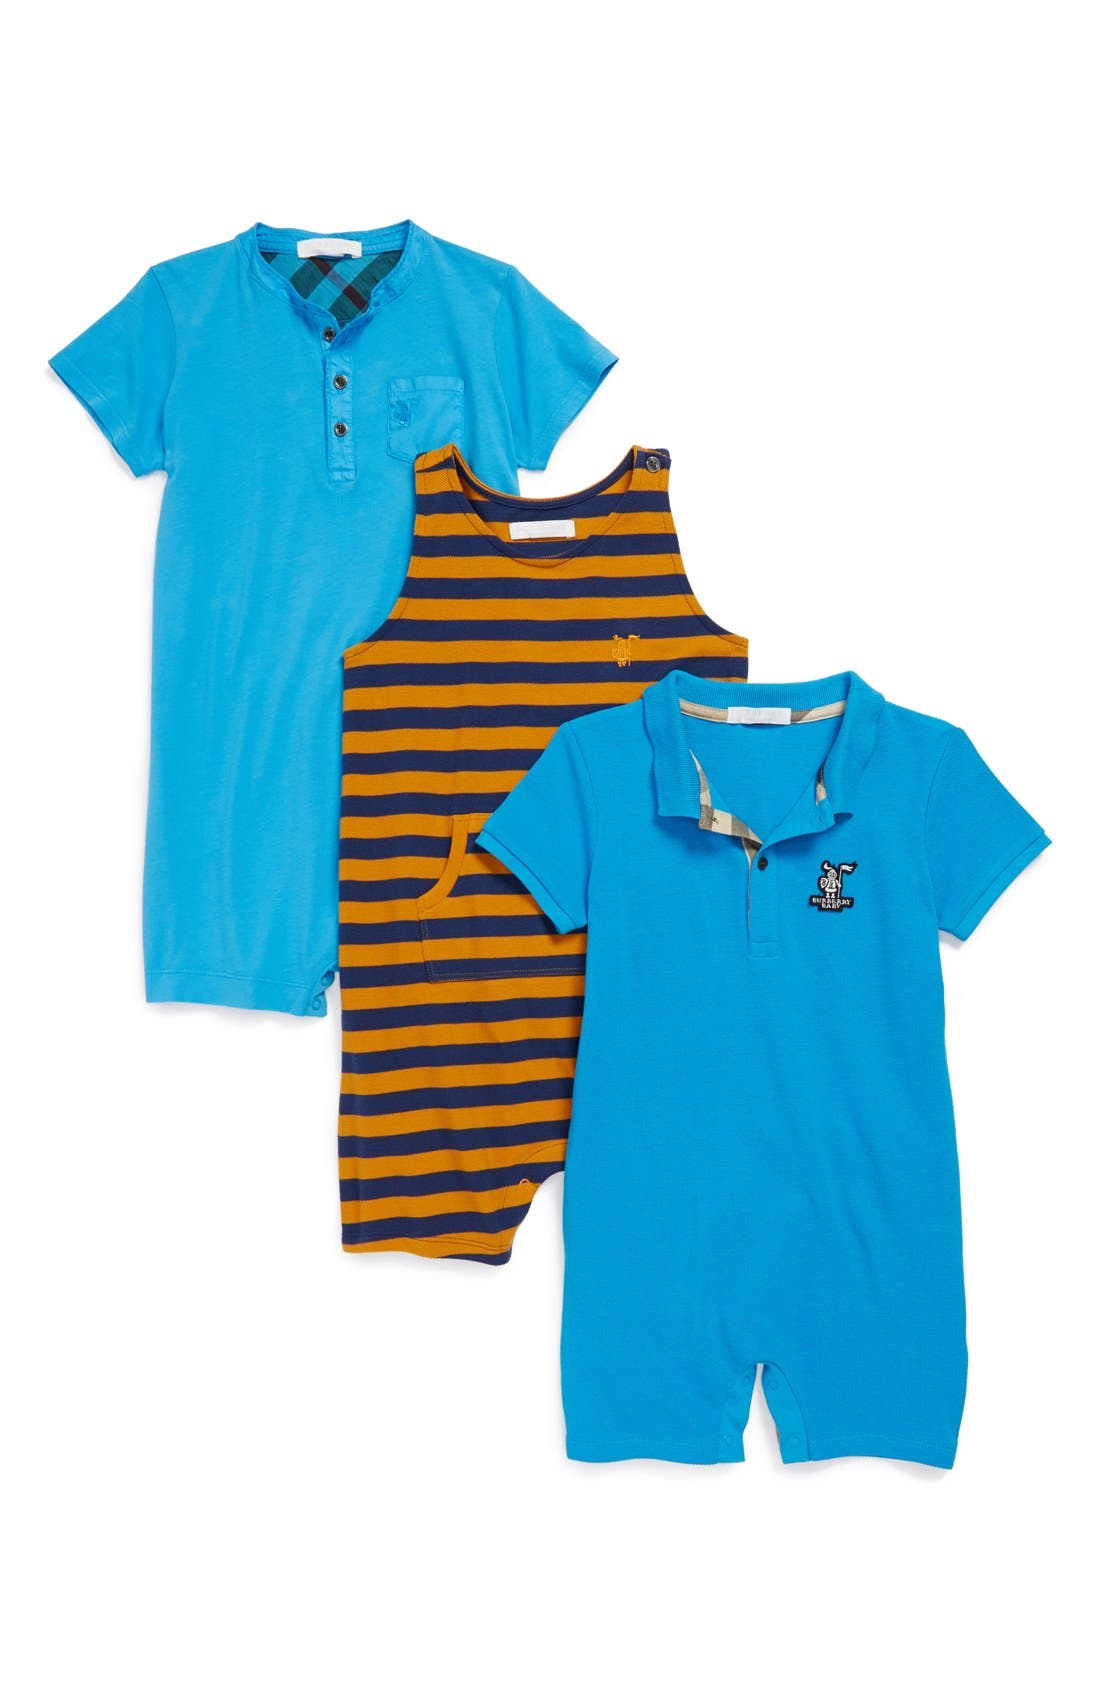 Alternate Image 1 Selected - Burberry 'Avison' Romper Gift Set (Set of 3) (Toddler Boys)